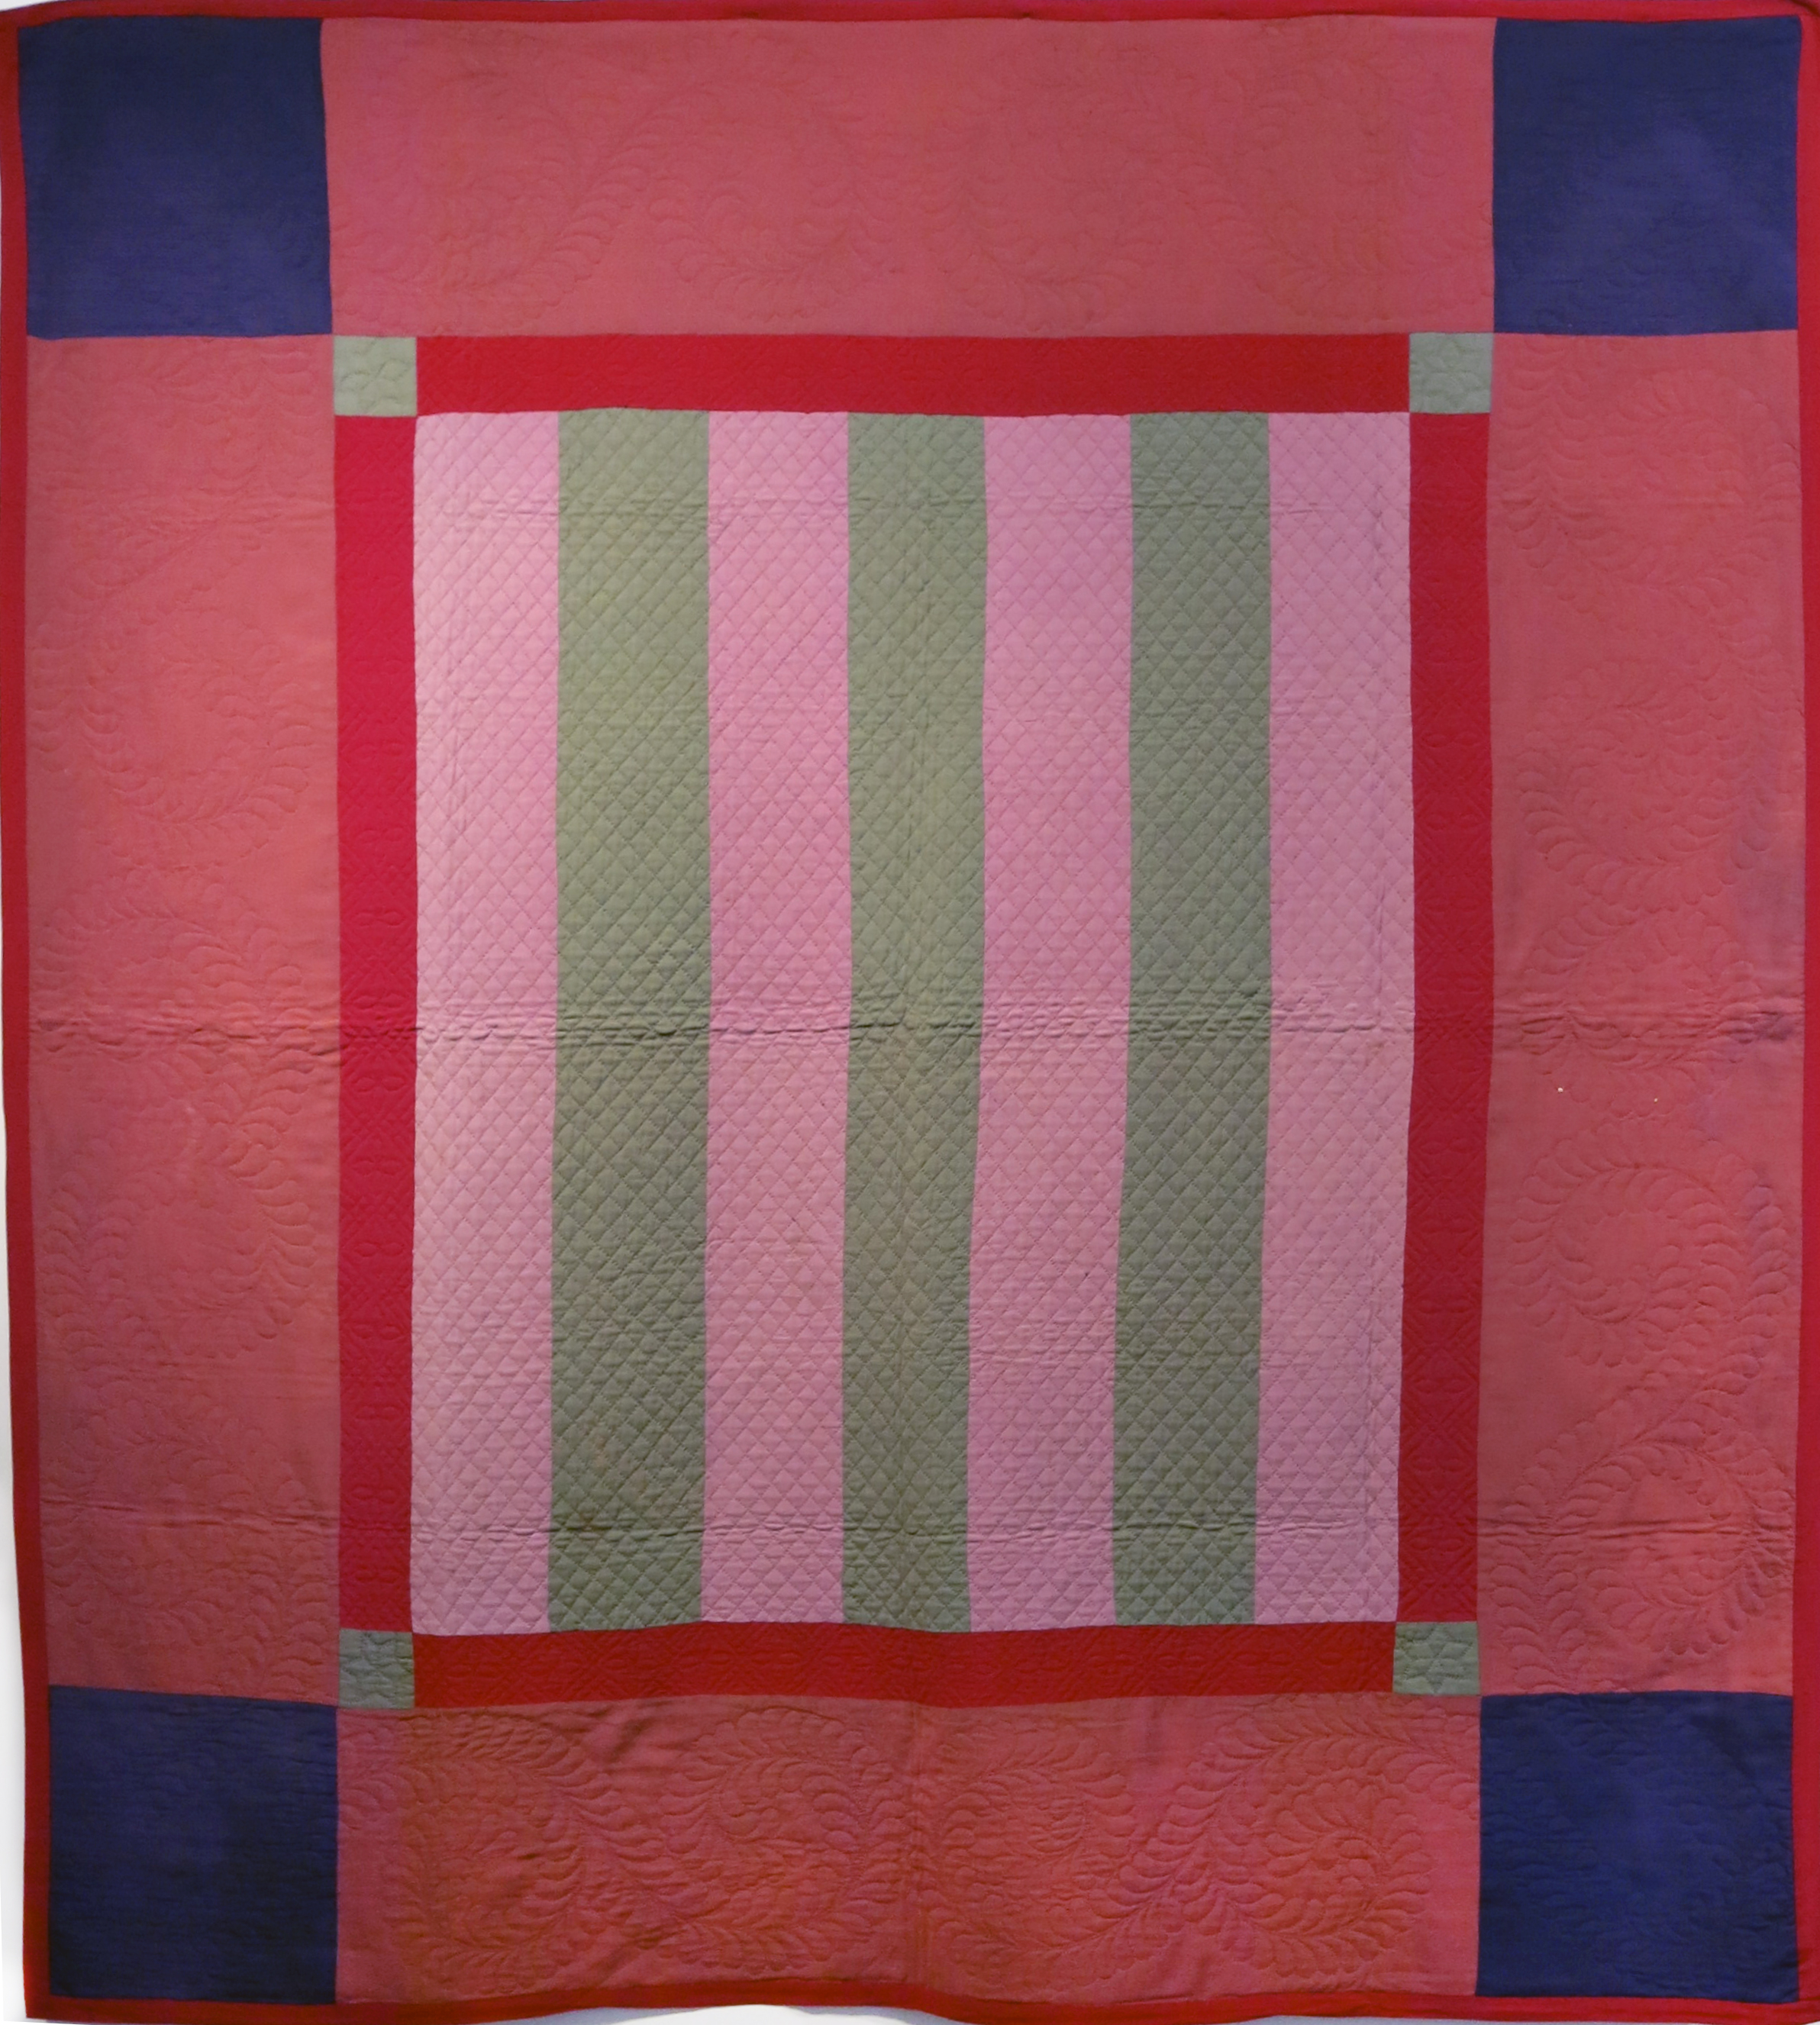 Amish, Lancaster County, PA,  Five Color Bars Quilt , c. 1930s-40s, wool and cotten crepe, 82h x 73w in.